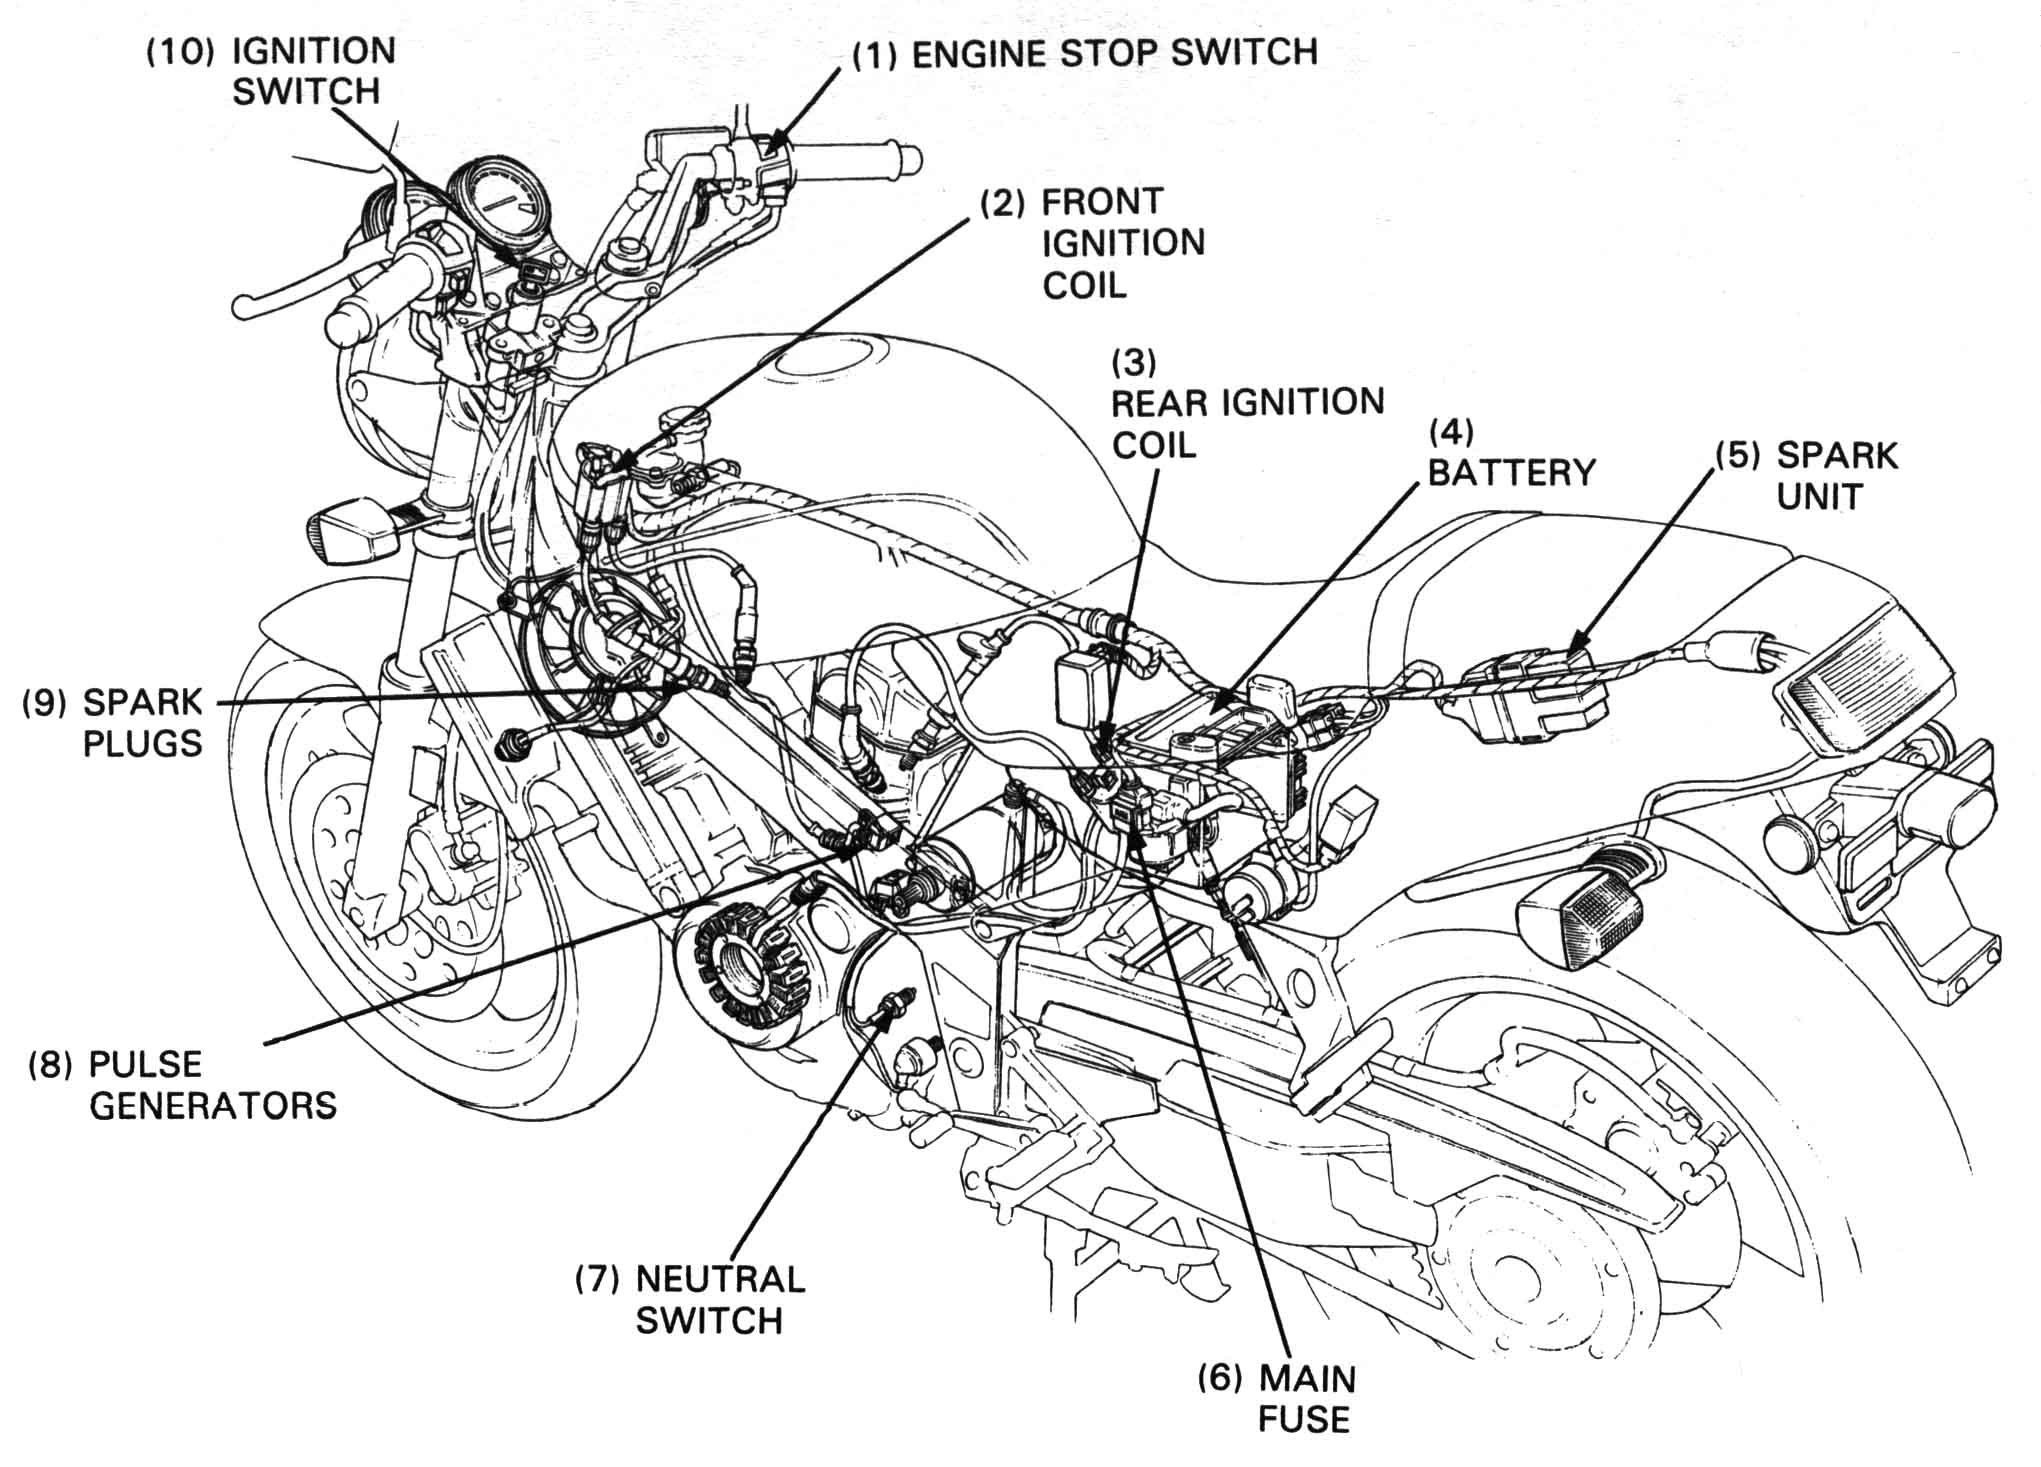 16-0-img01-thumb Yamaha Radian Wiring Diagram on